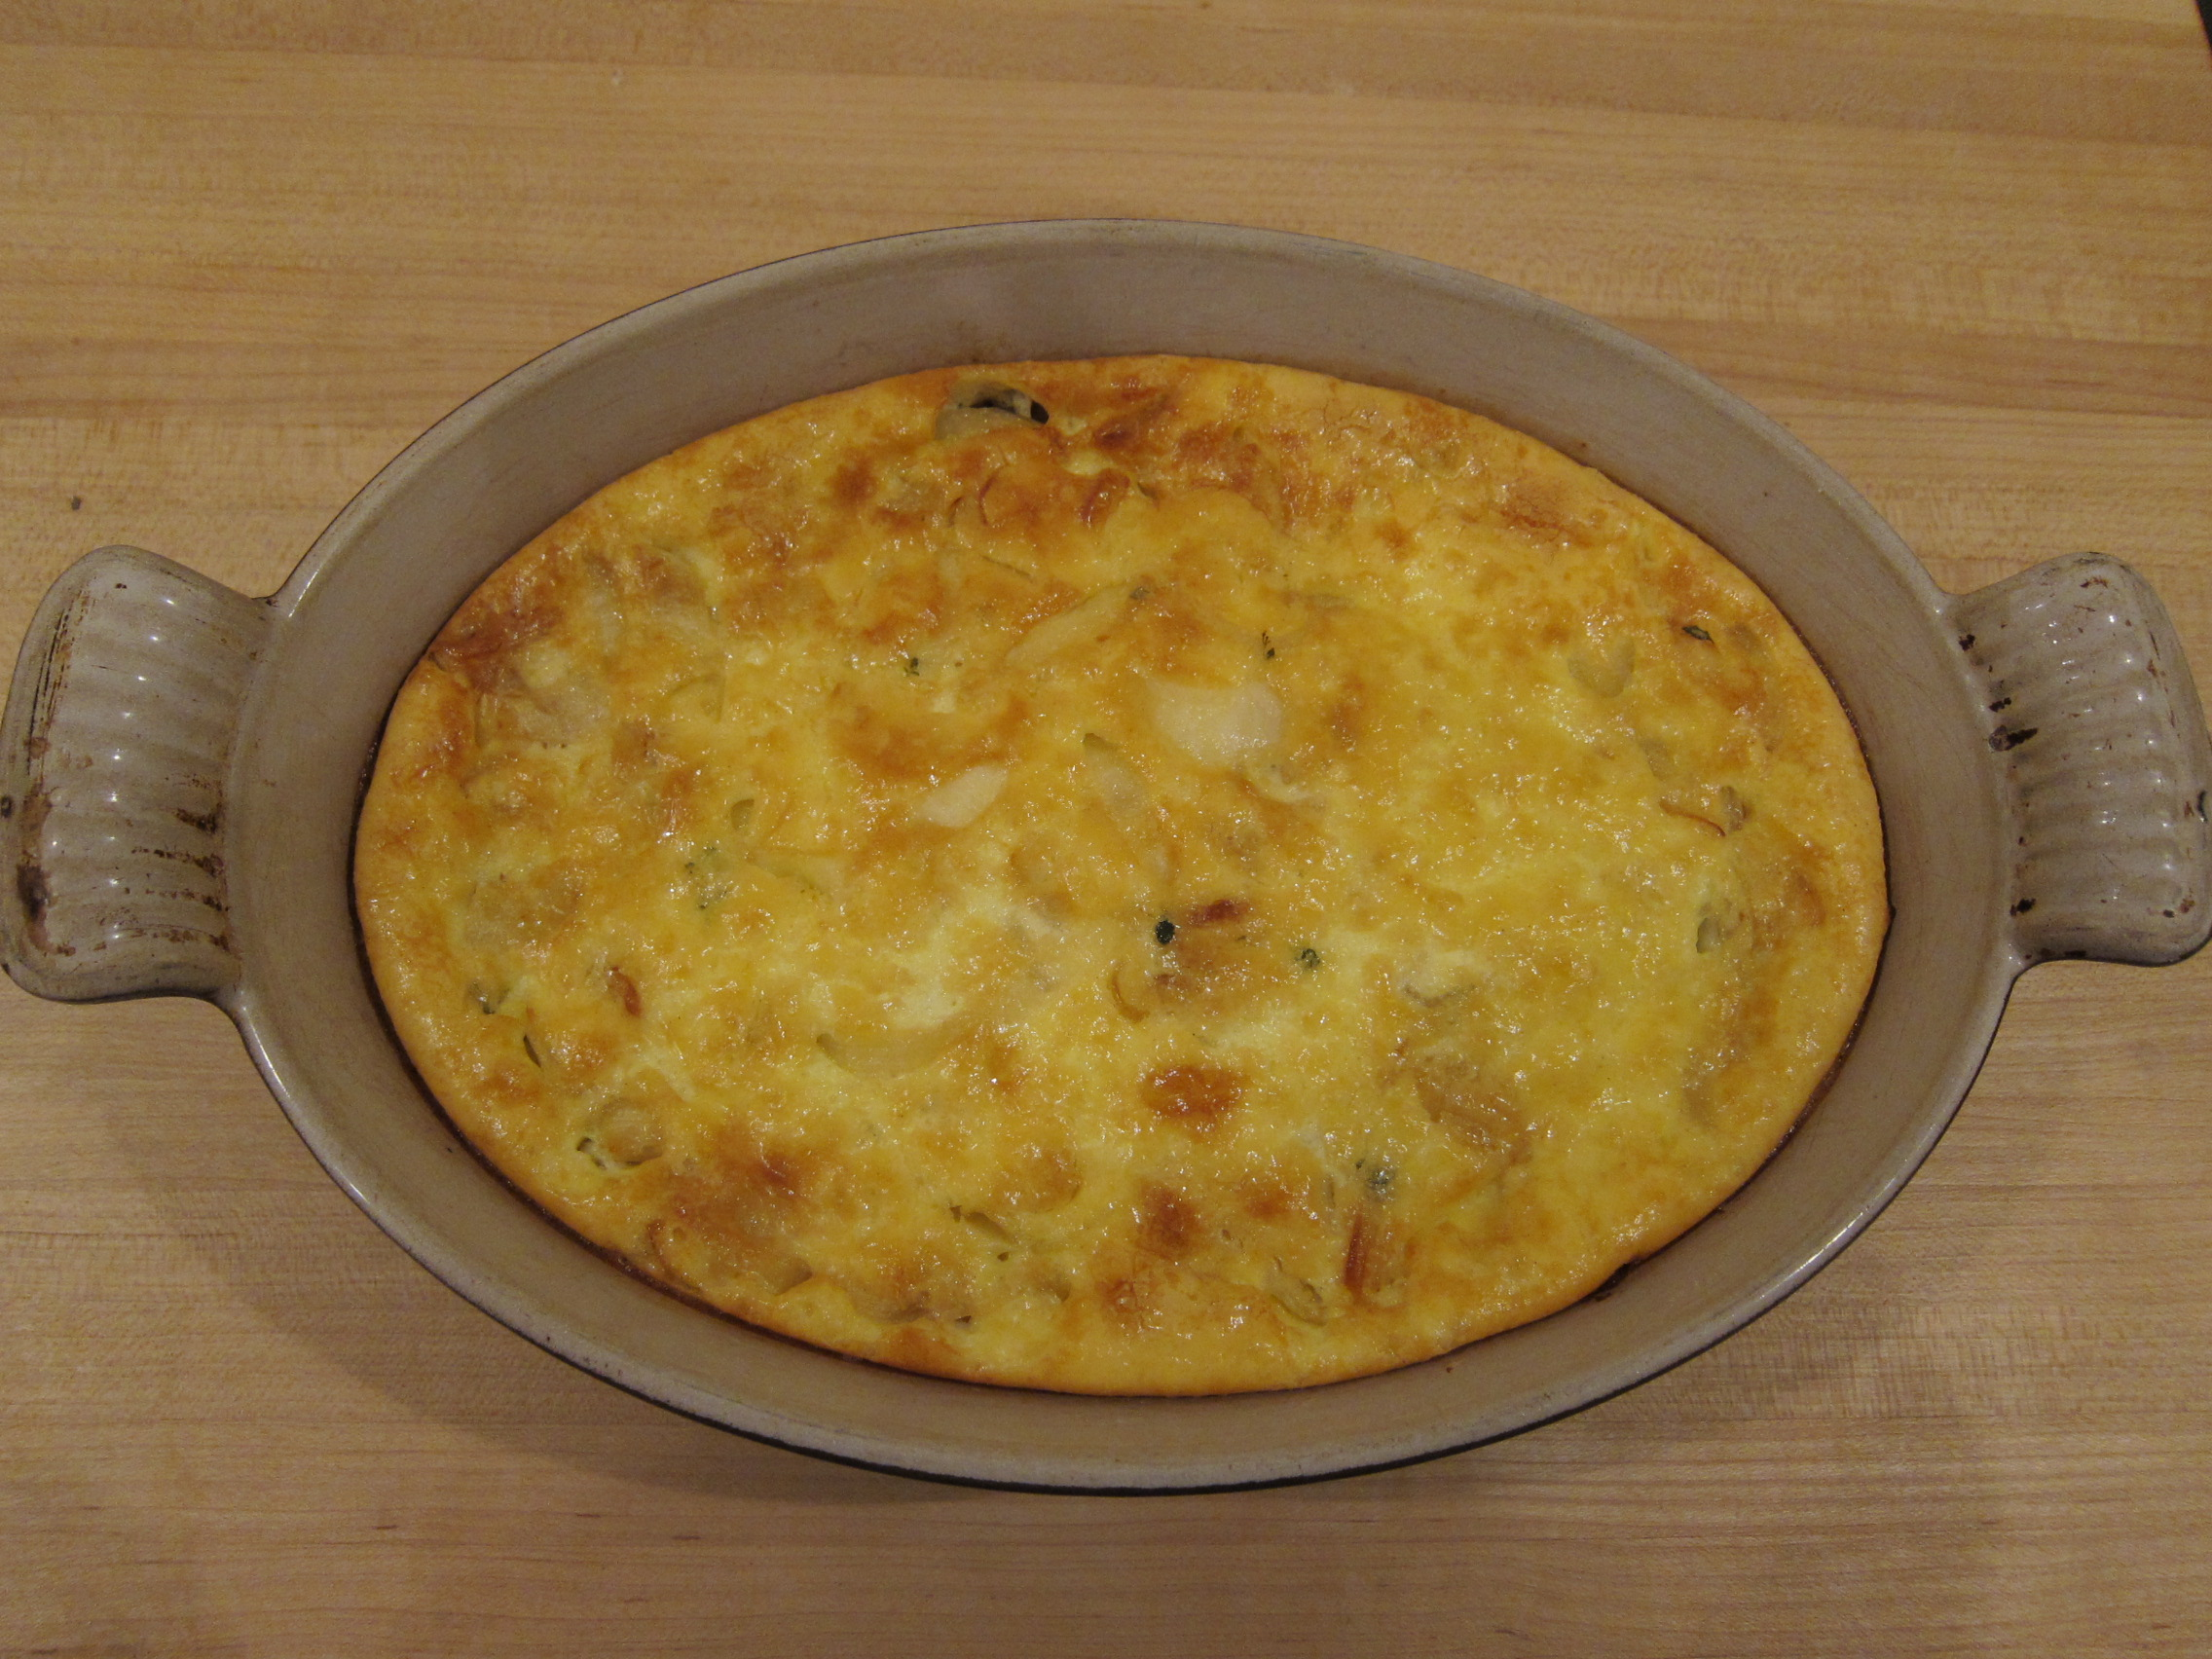 Caramelized Onion Pudding